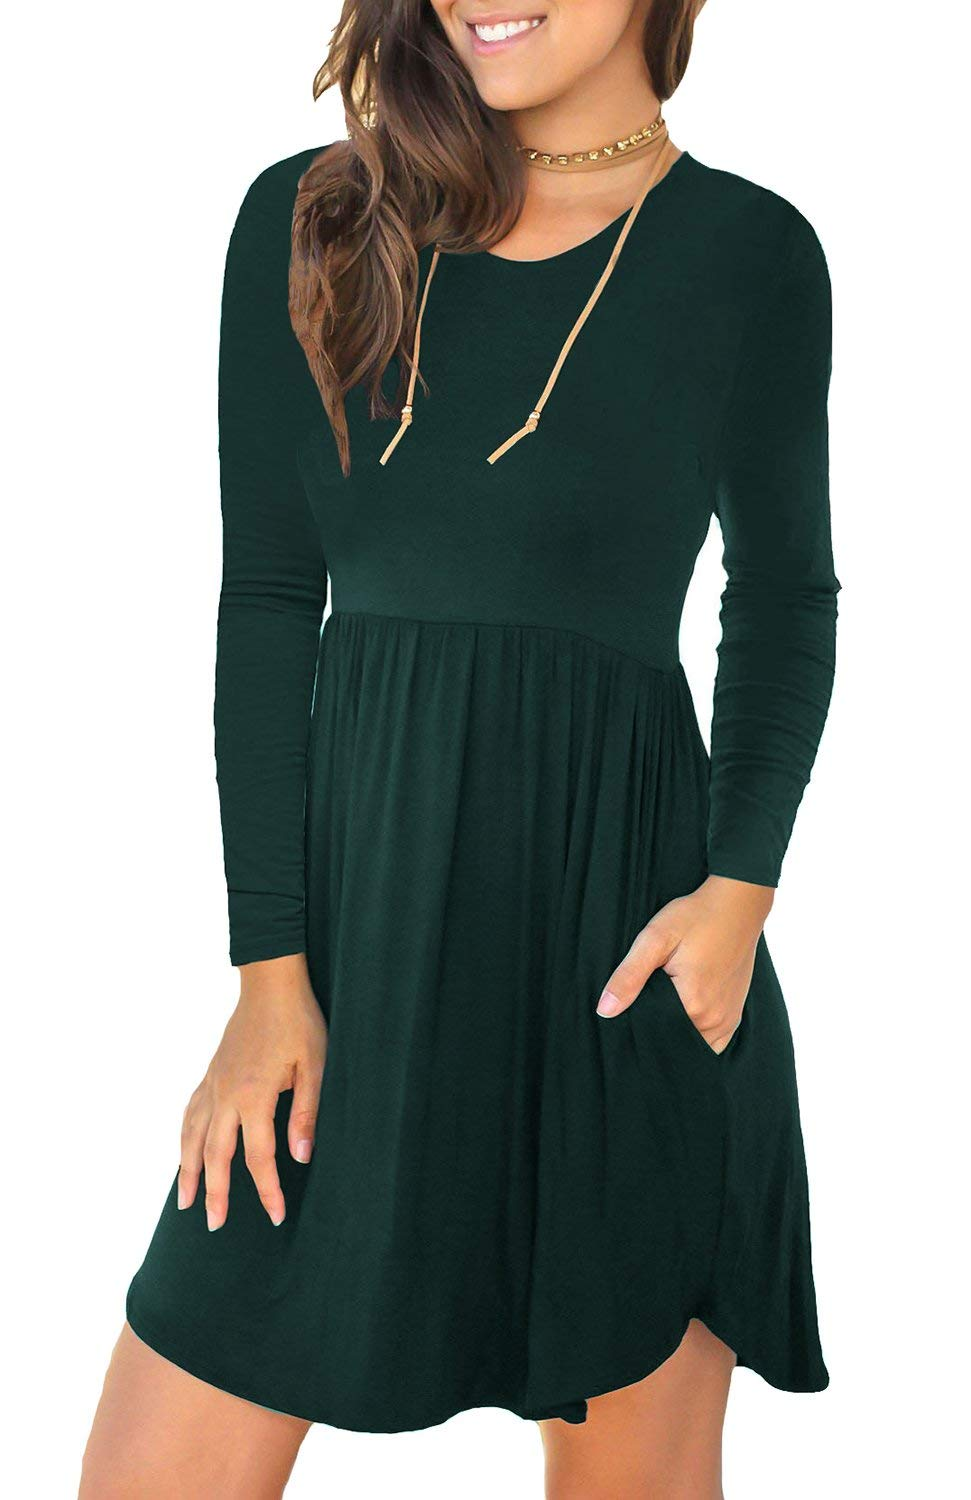 Casual Short Dress with Sleeves